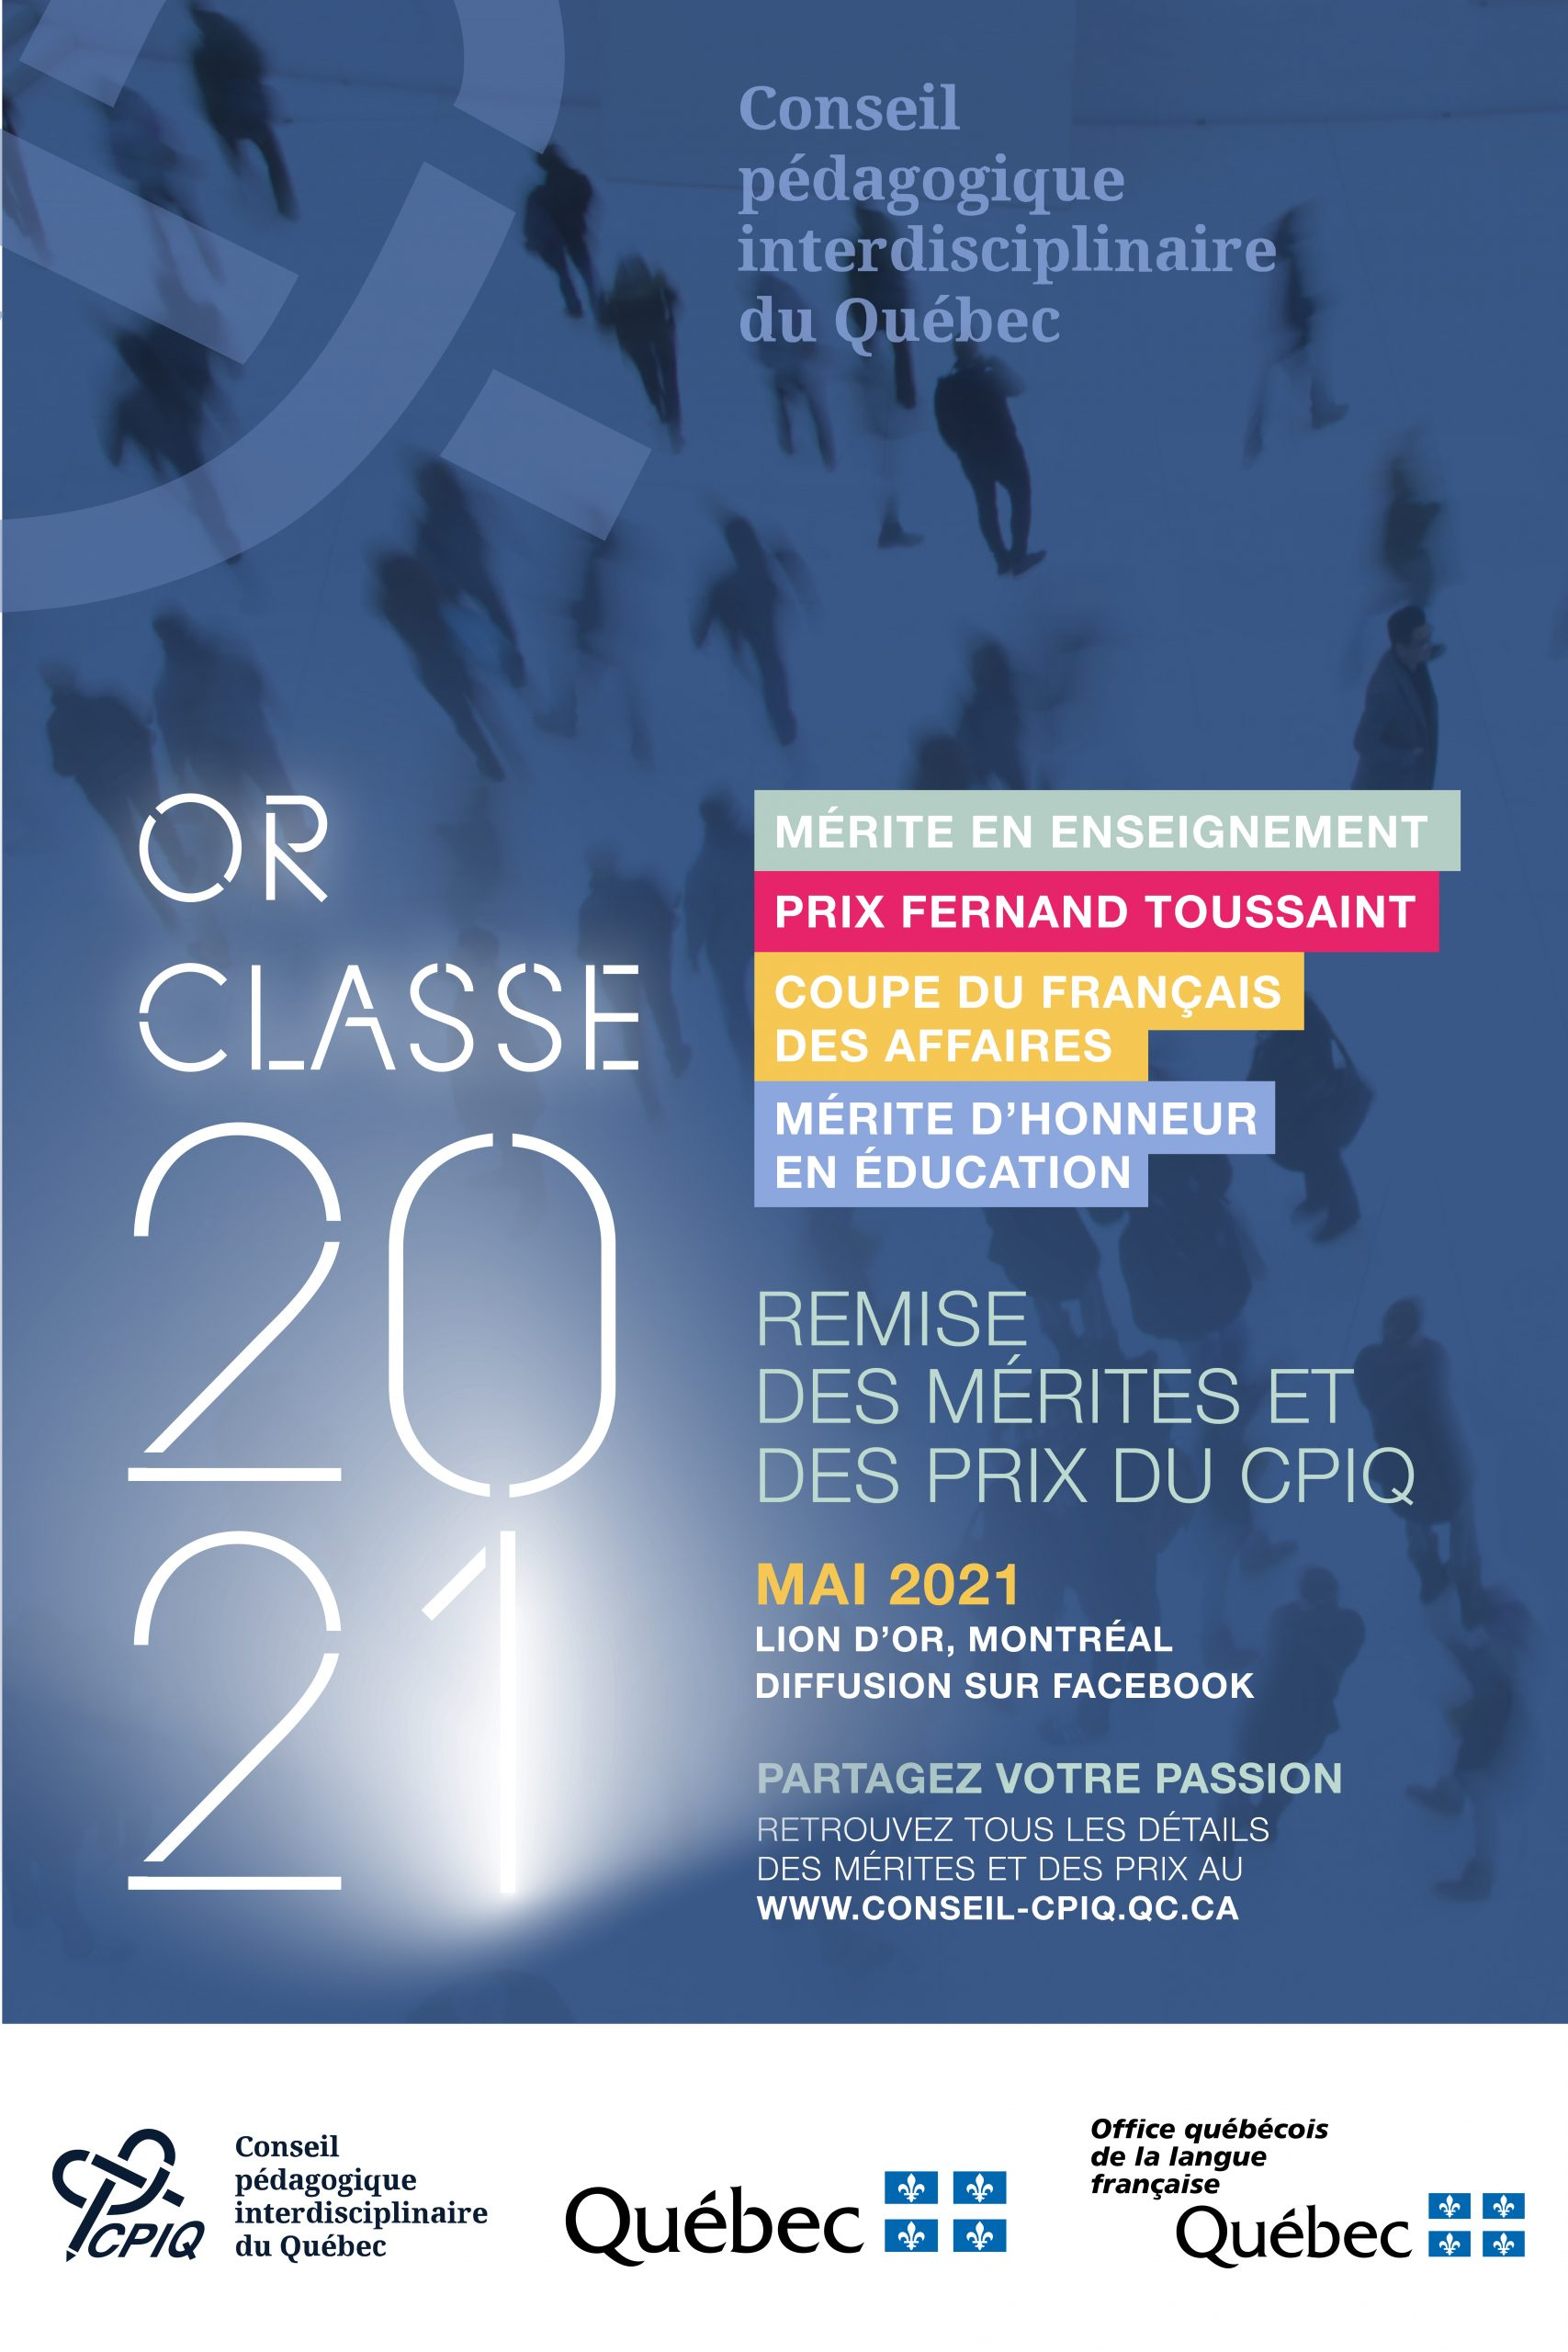 Or classe 2021